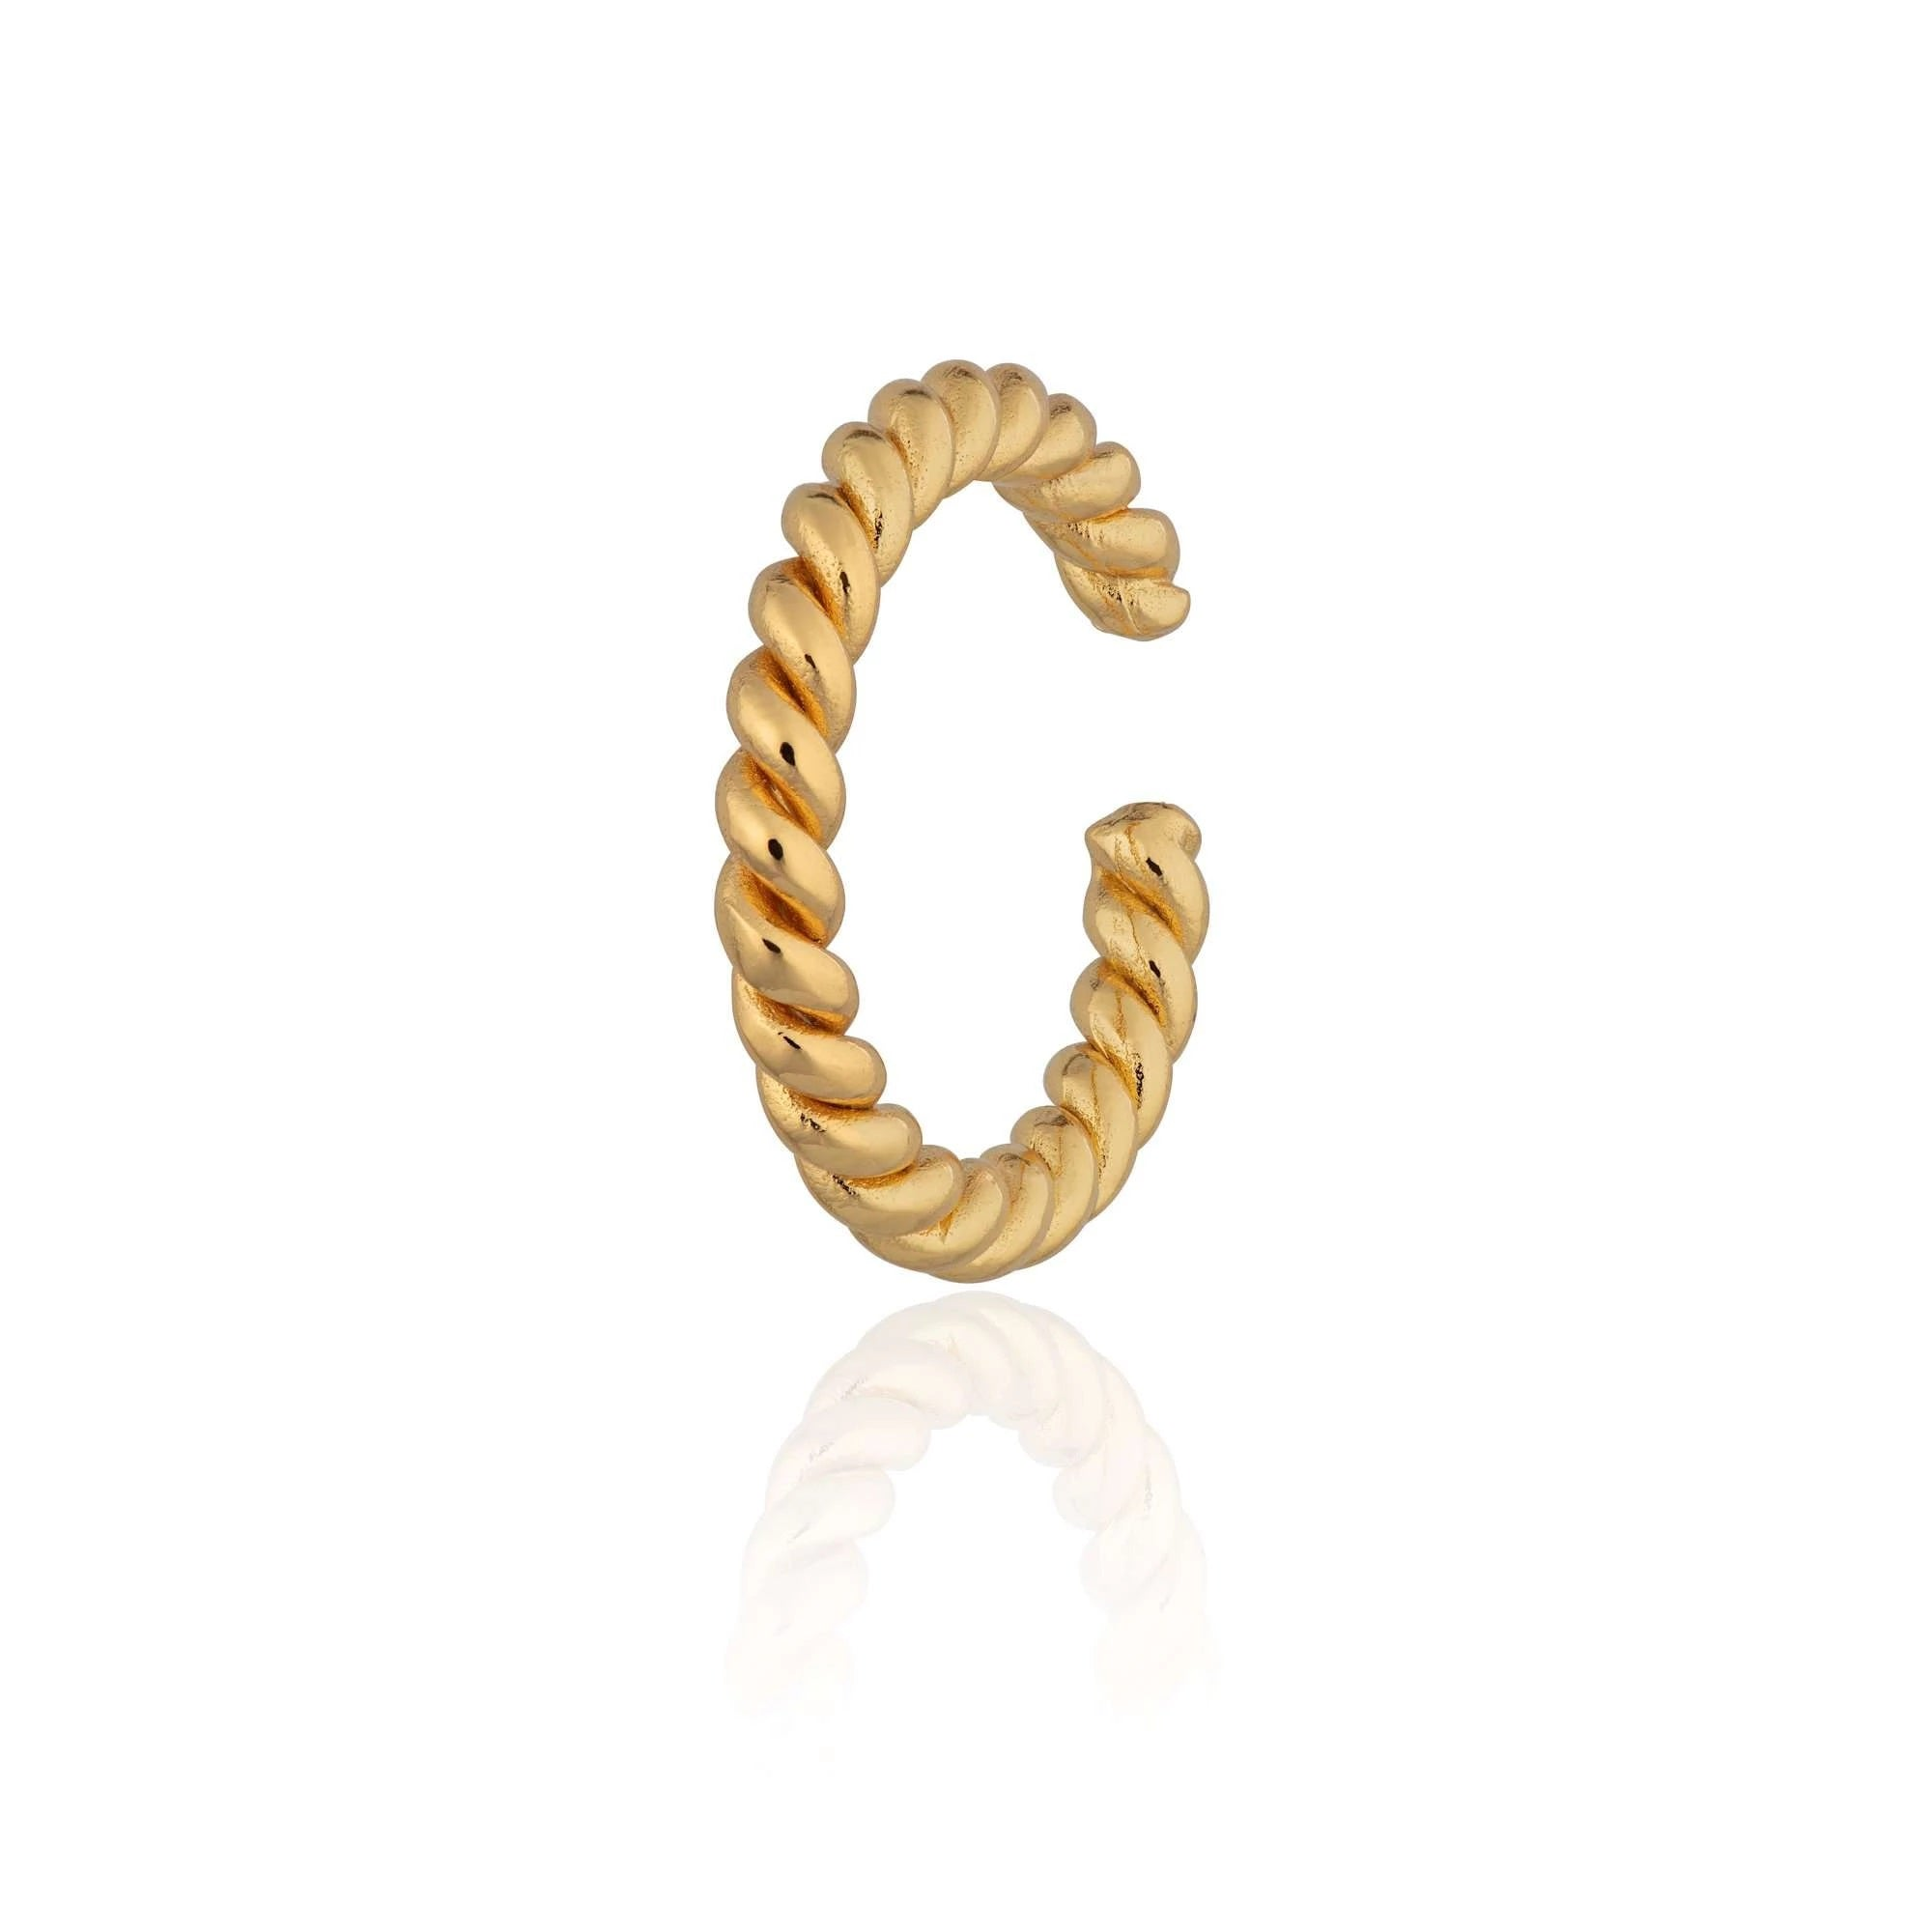 Scream Pretty Twist Single Ear Cuff Gold